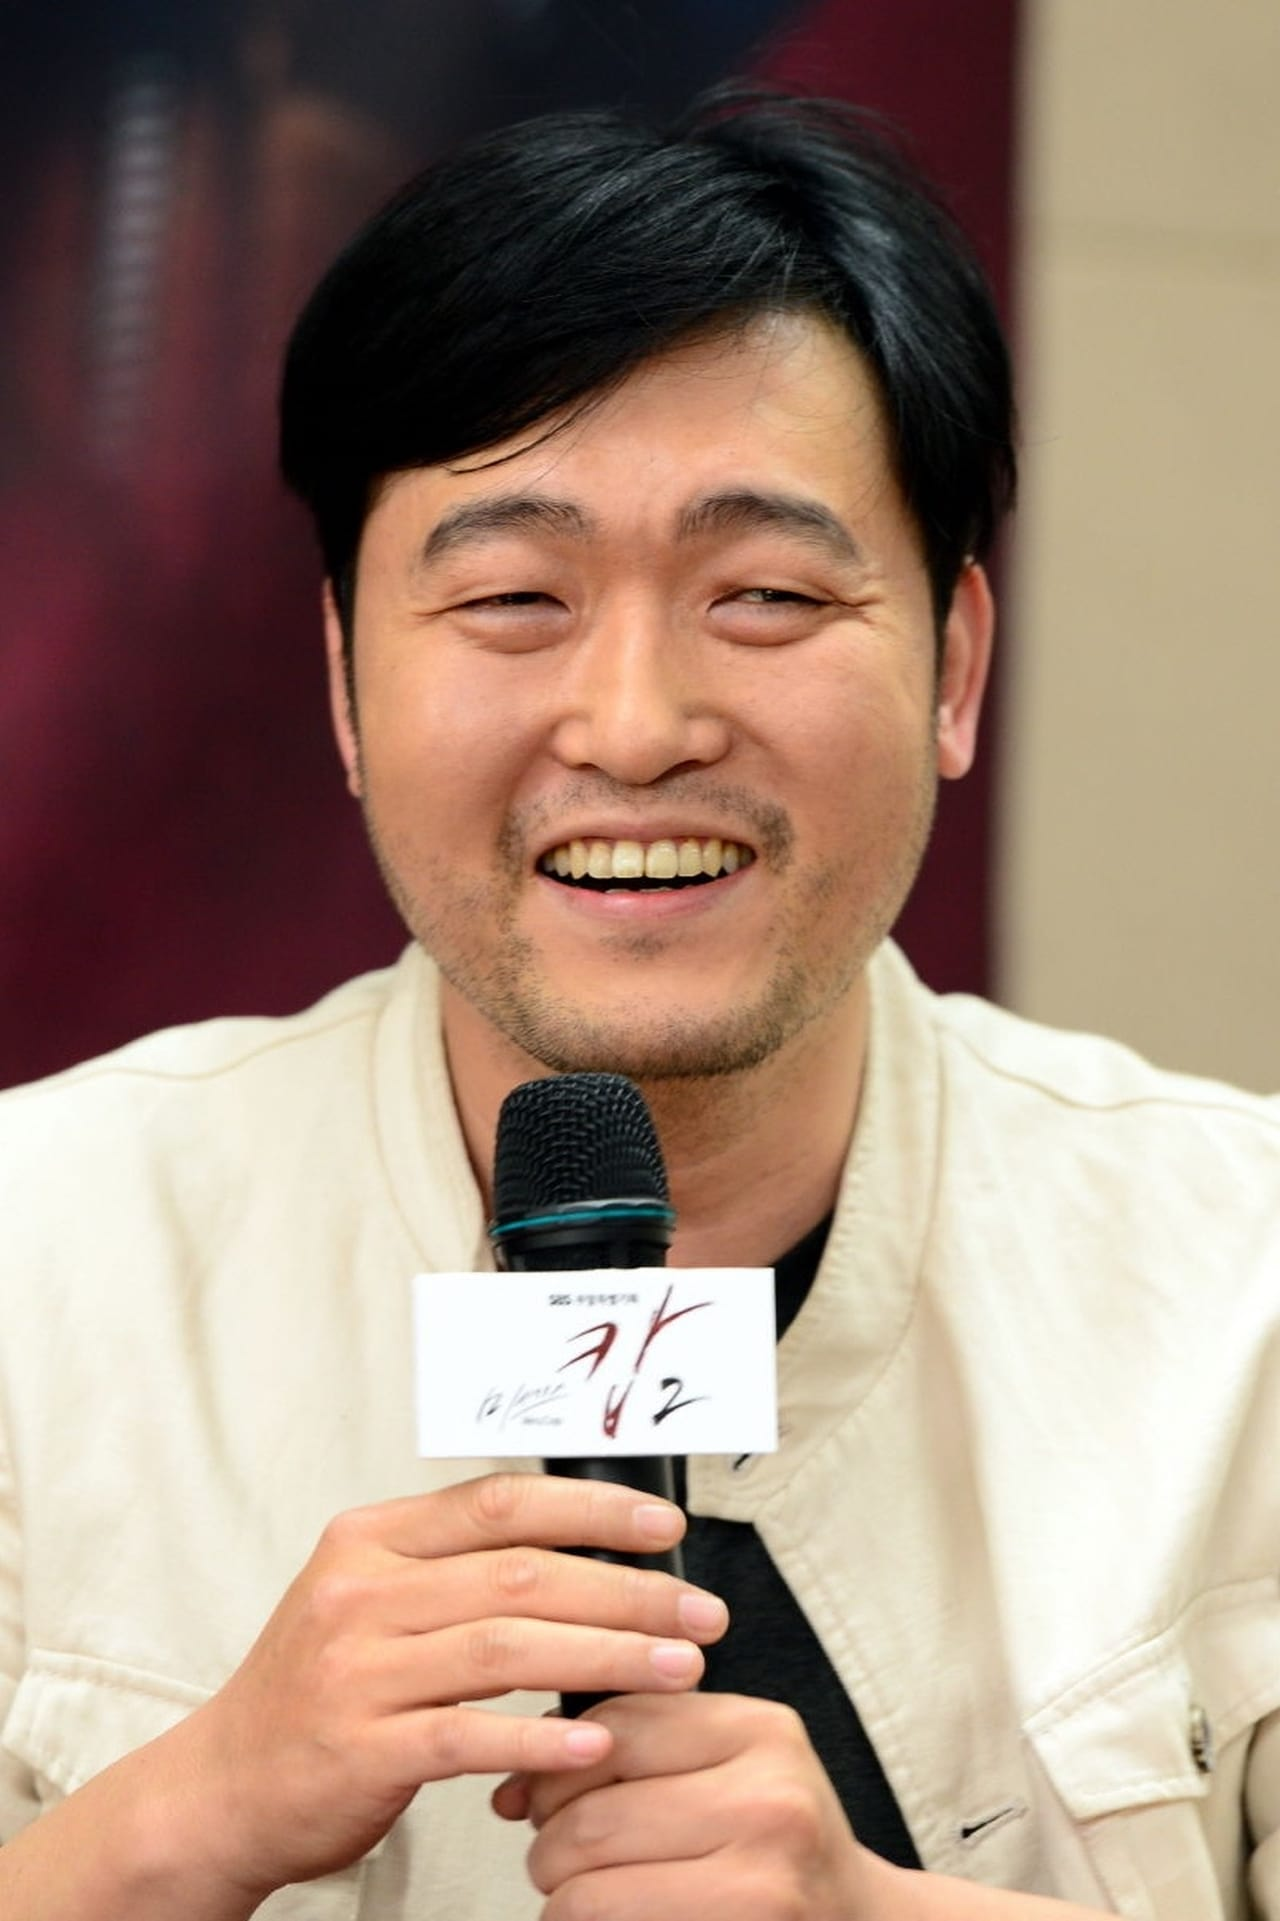 Lee Jun-hyeok